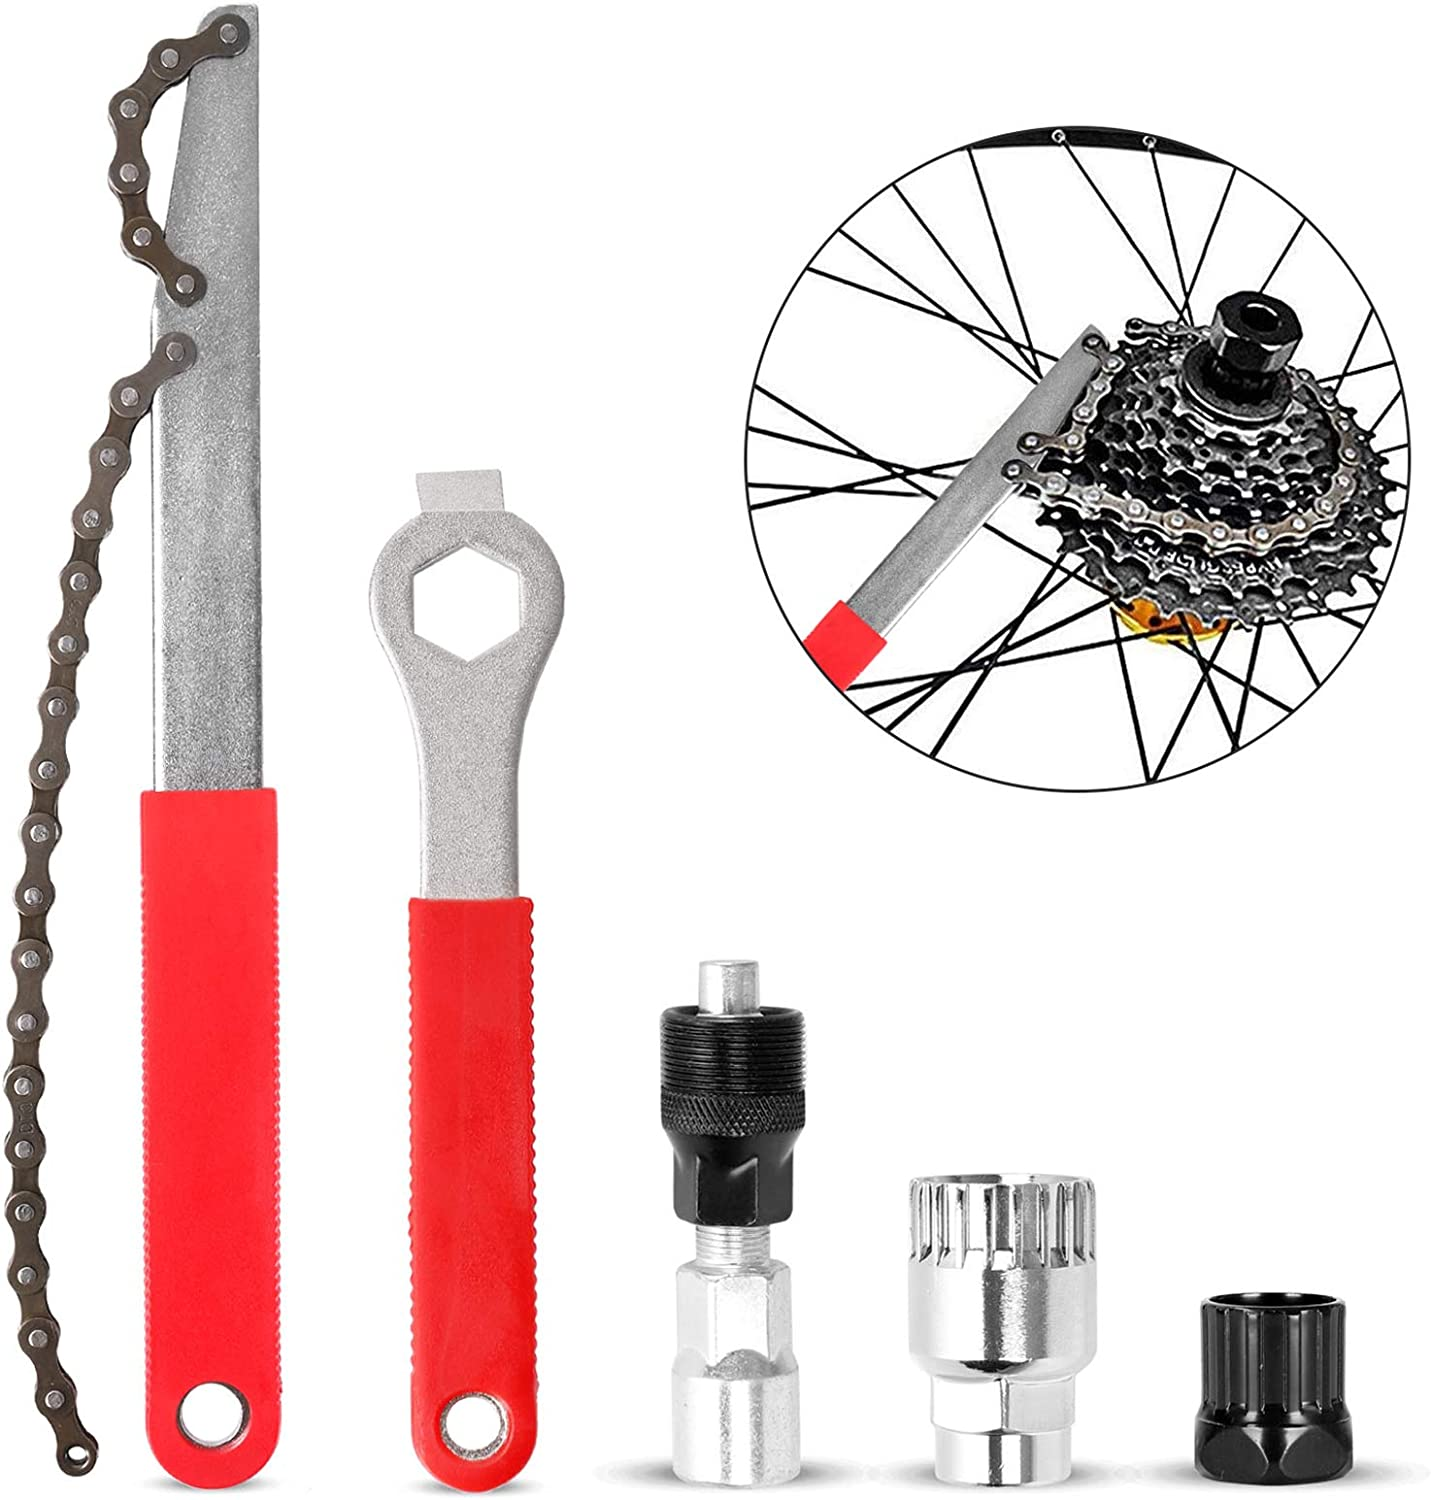 Odoland Bike Repair Tool Kit, Including Bike Crank Extractor with 16mm Spanner/Wrench, Bicycle Flywheel Chain Sprocket Remover Tool, Cassette Lock Ring Removal Tool : Sports & Outdoors